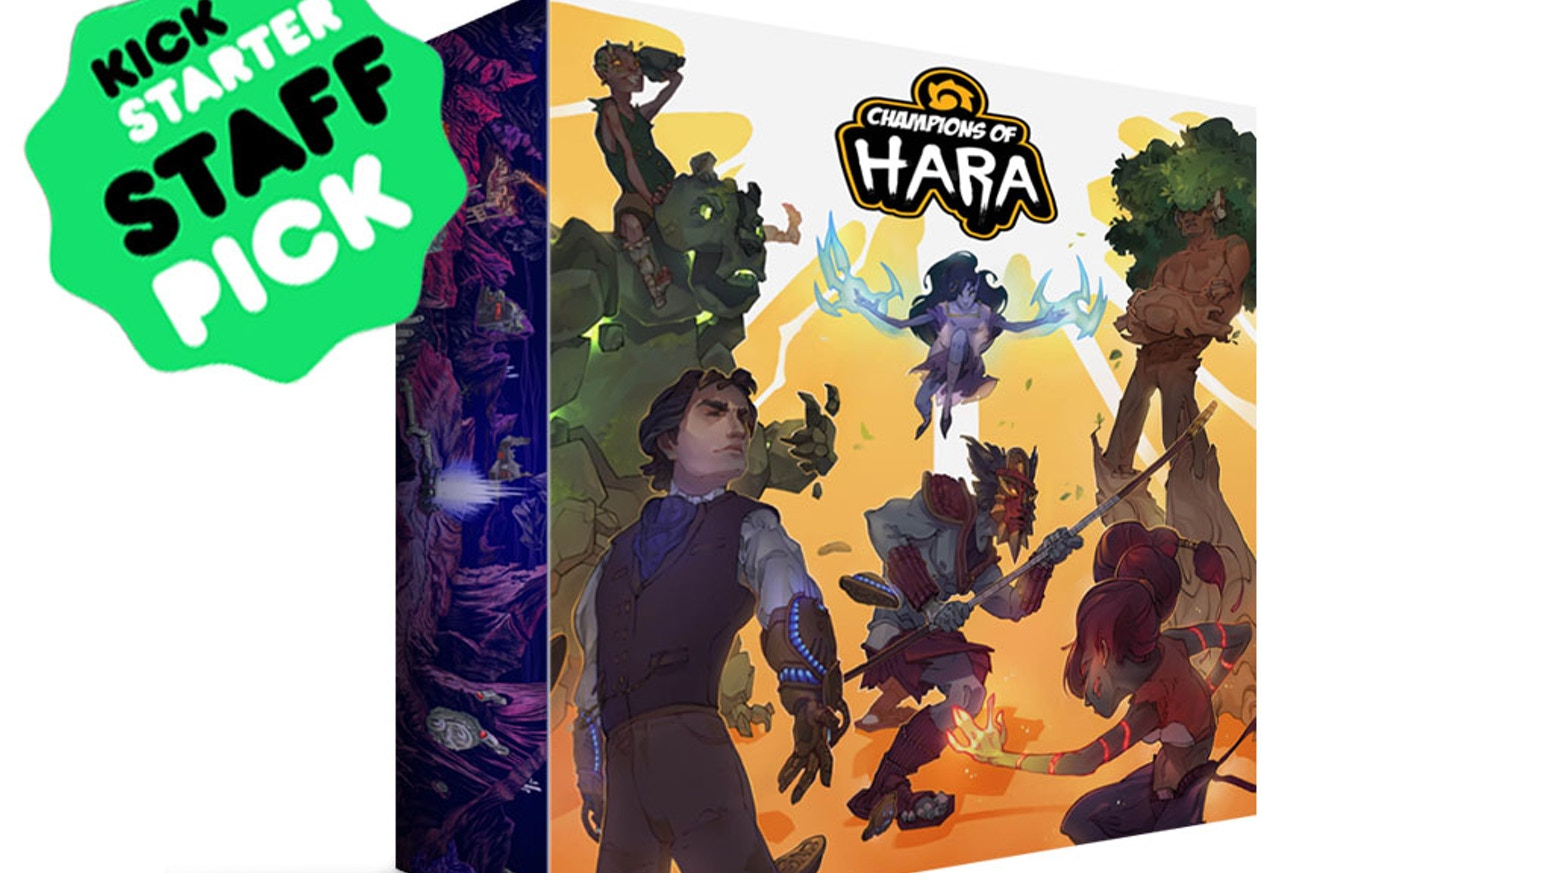 Become a Champion and explore the shifting planes of Hara in an epic blend of narrative adventure and arena style combat.